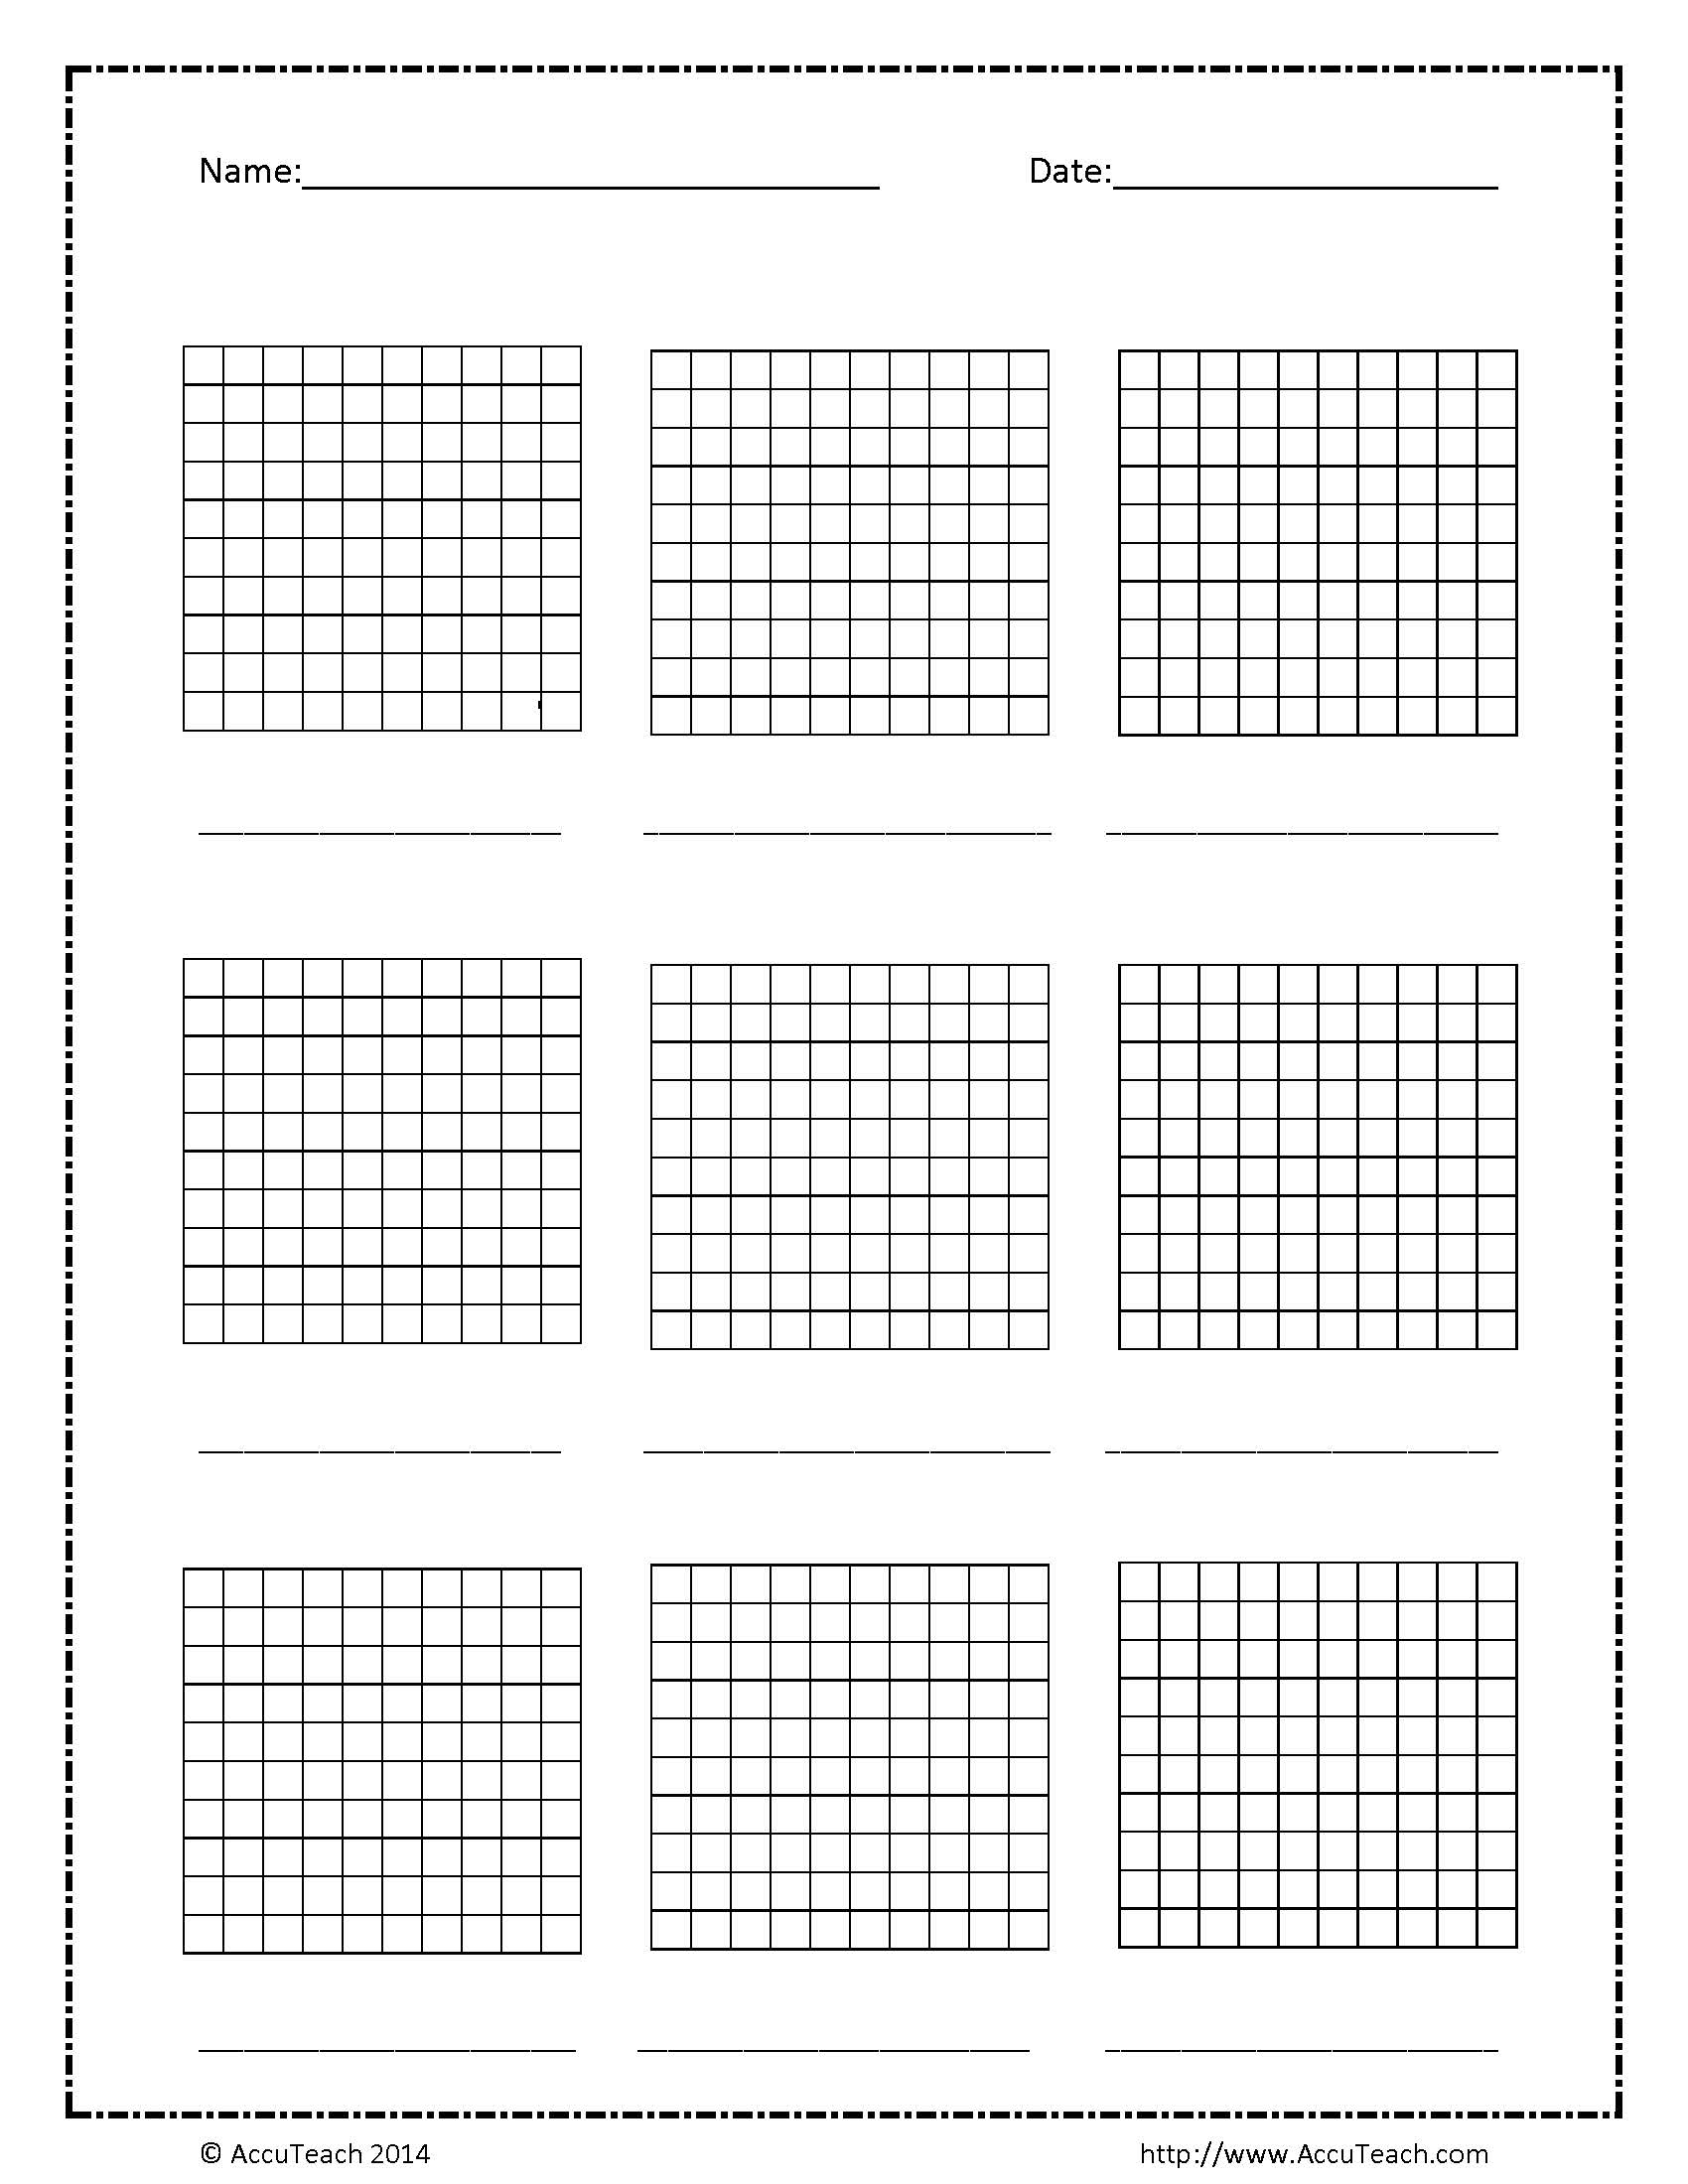 Geeky image in printable hundredths grids